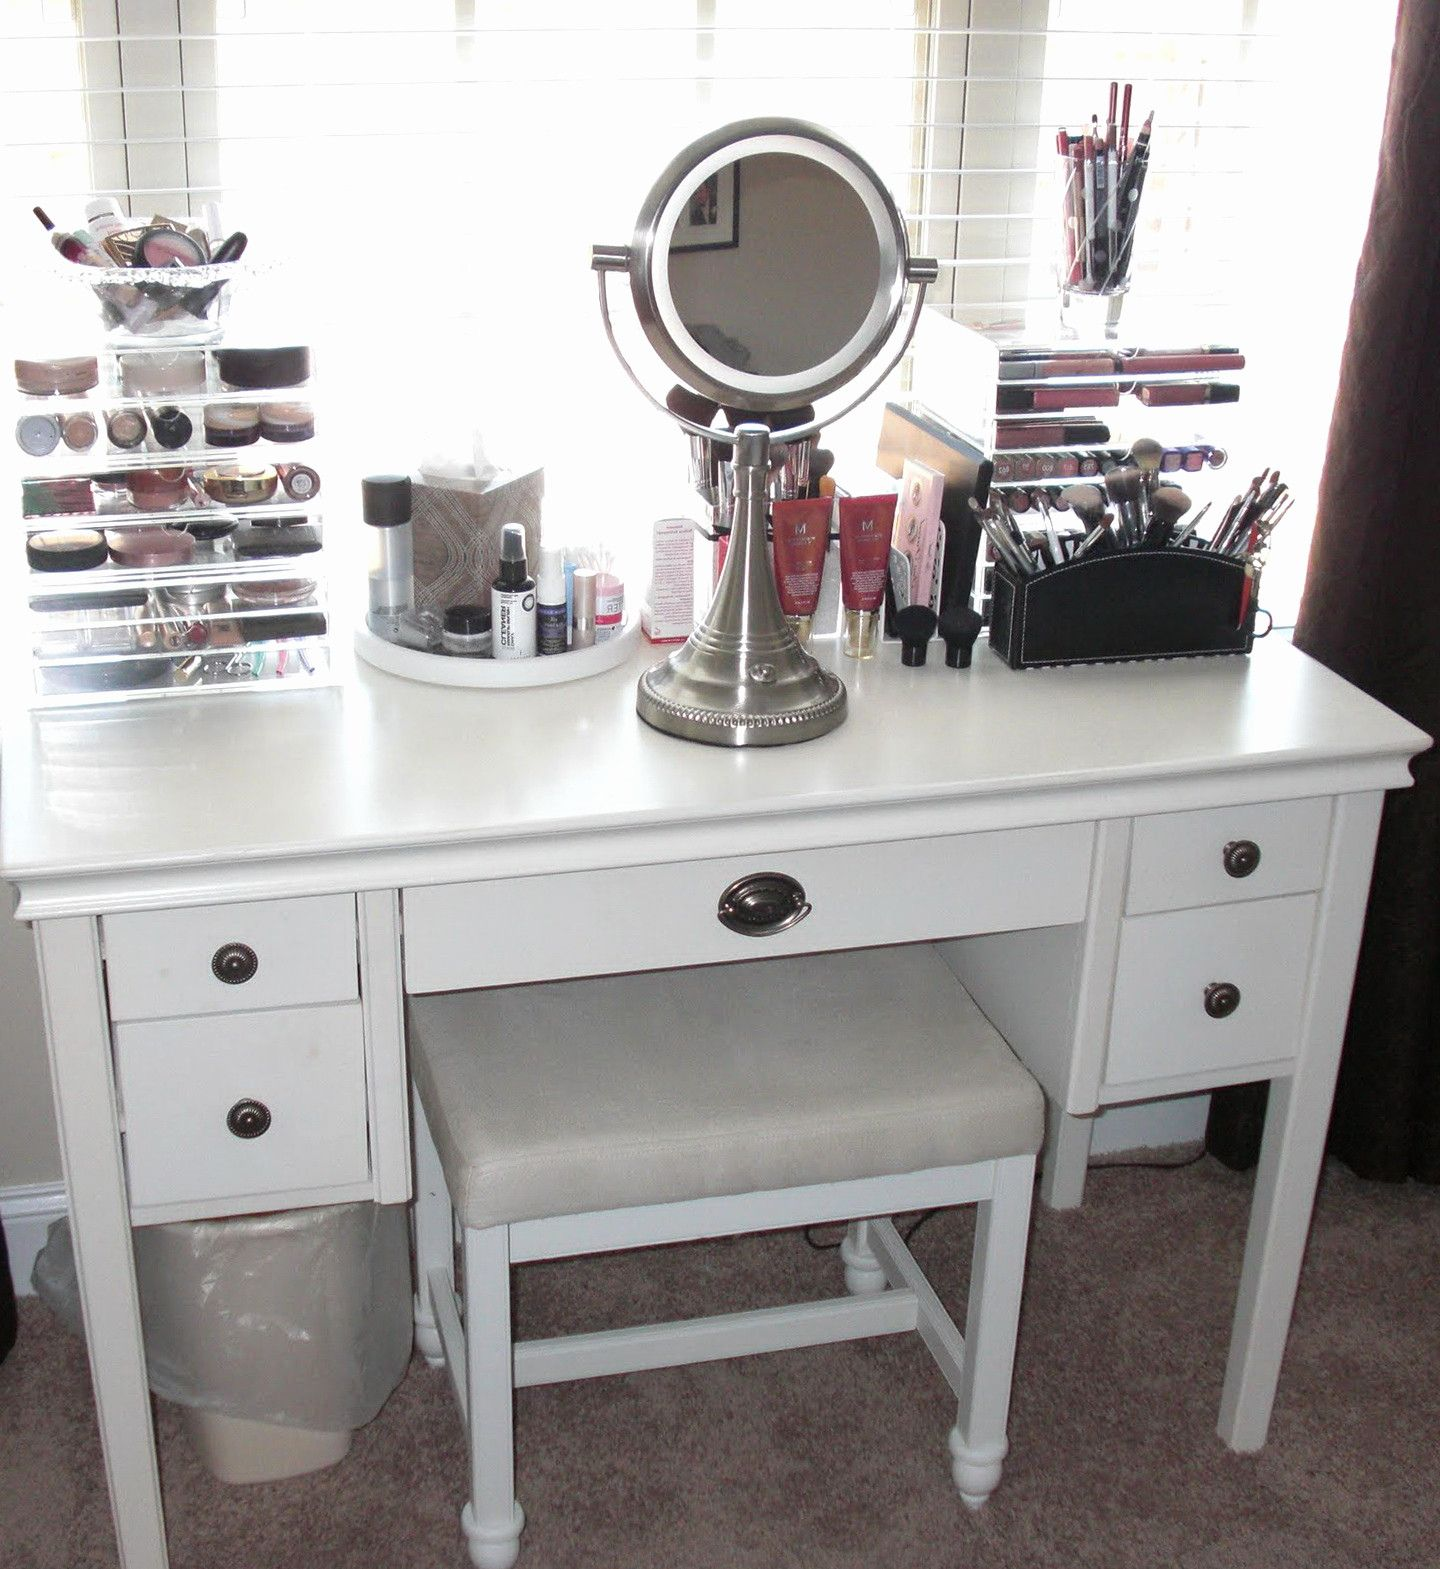 10 Small Bedroom Vanity Ideas Most Of The Brilliant And Stunning Bedroom Makeup Vanity Small Bedroom Vanity Bedroom Vanity Set